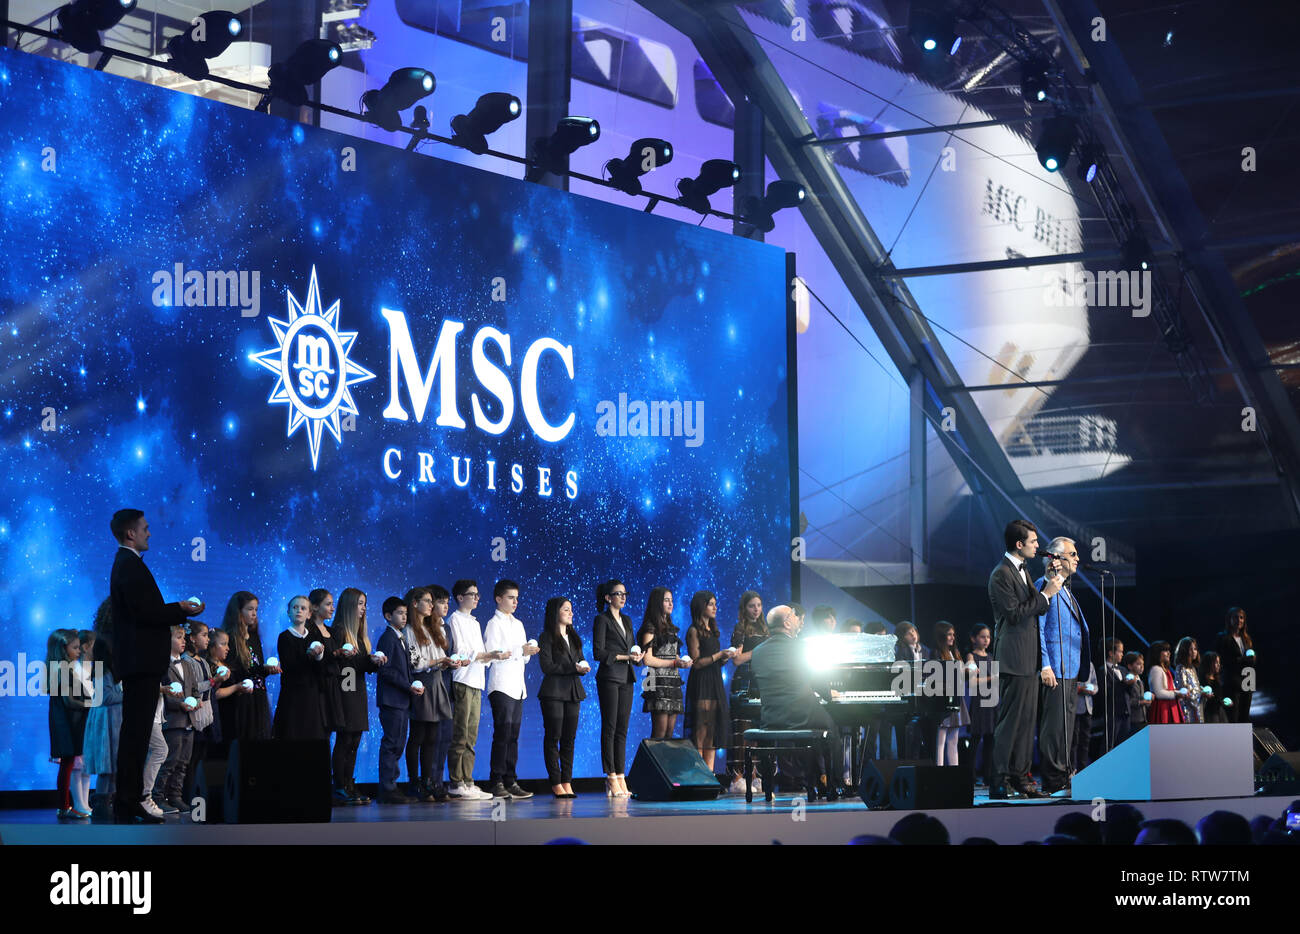 Andrea Bocelli and Matteo Bocelli performing at the naming ceremony of the MSC Bellissima, the largest cruise ship to be christened in the UK, at the City Cruise Terminal in Southampton. - Stock Image